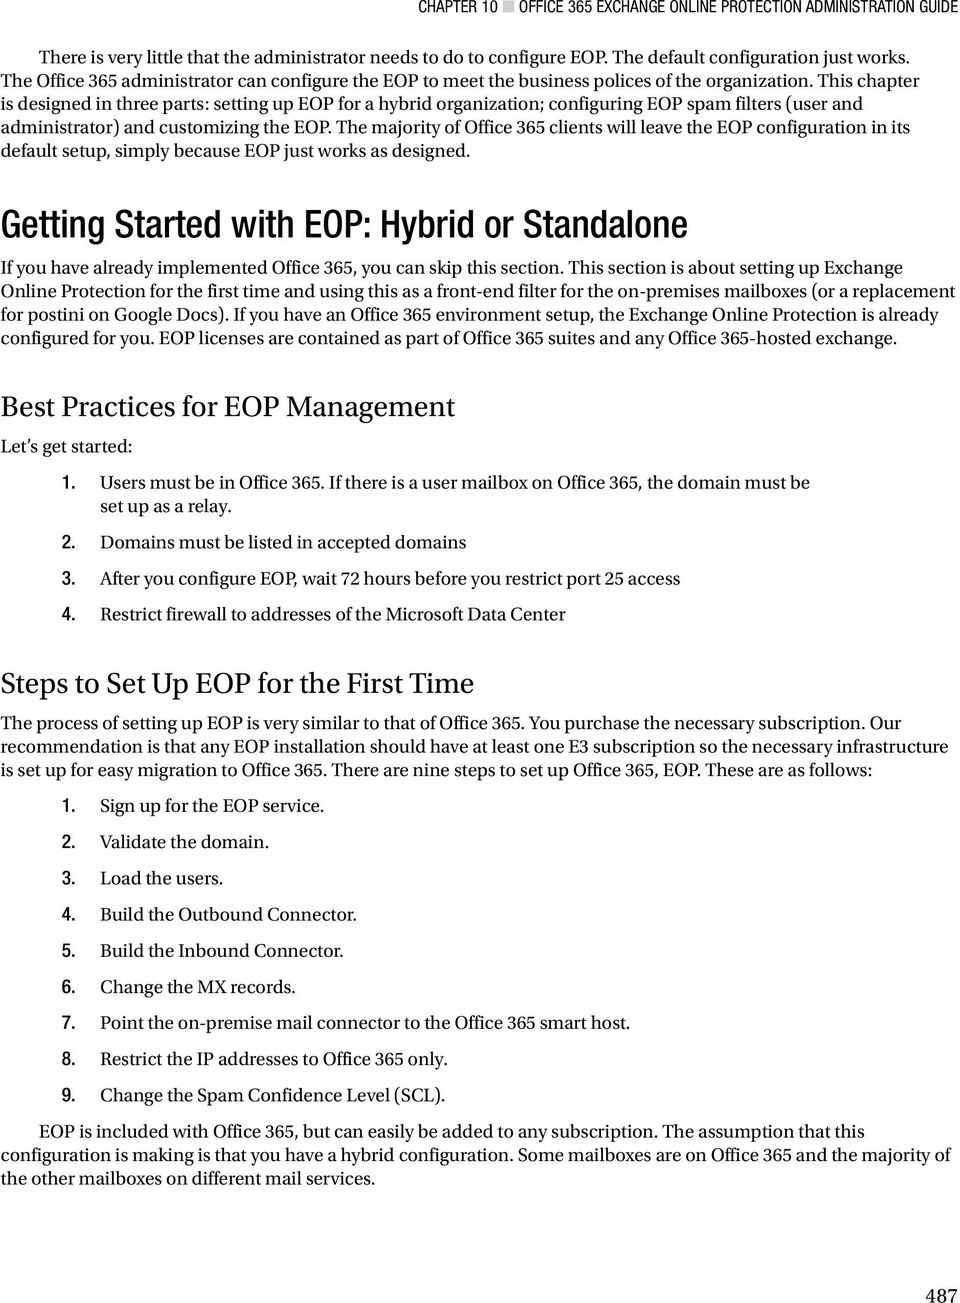 Office 365 Exchange Online Protection Administration Guide - PDF